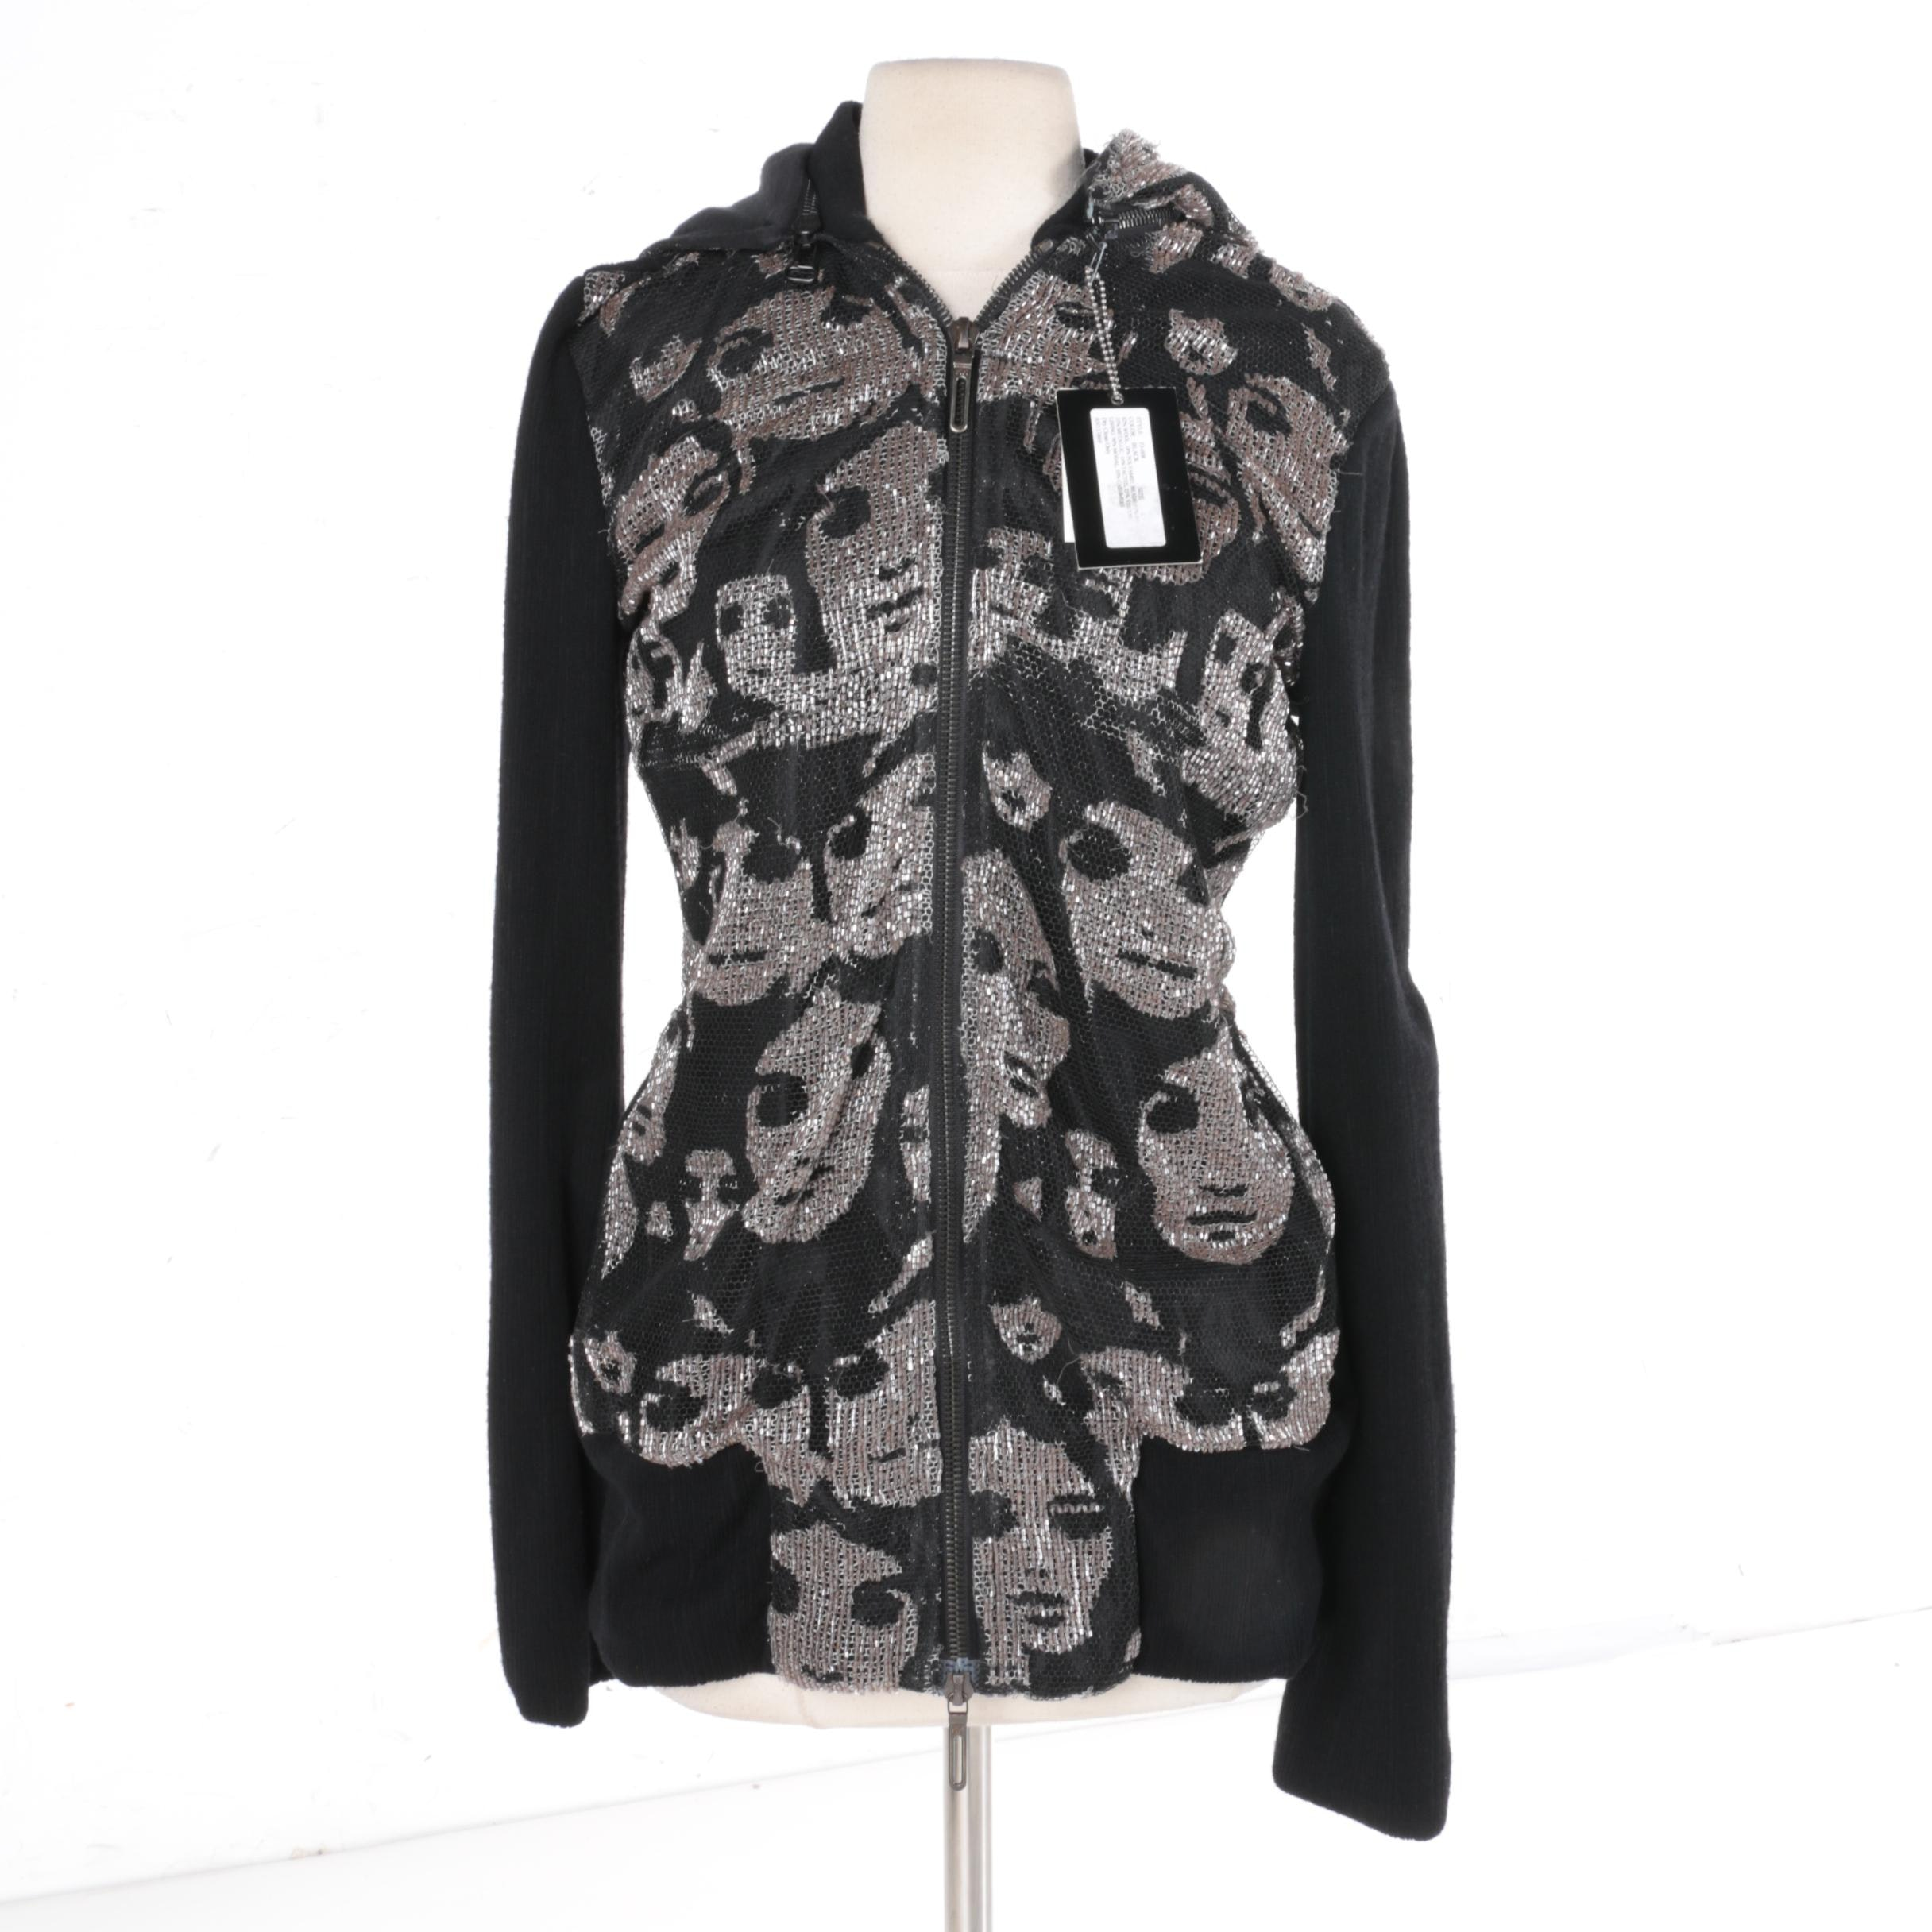 Women's Cosa Nostra by Jeffrey Sebeila Hooded Jacket